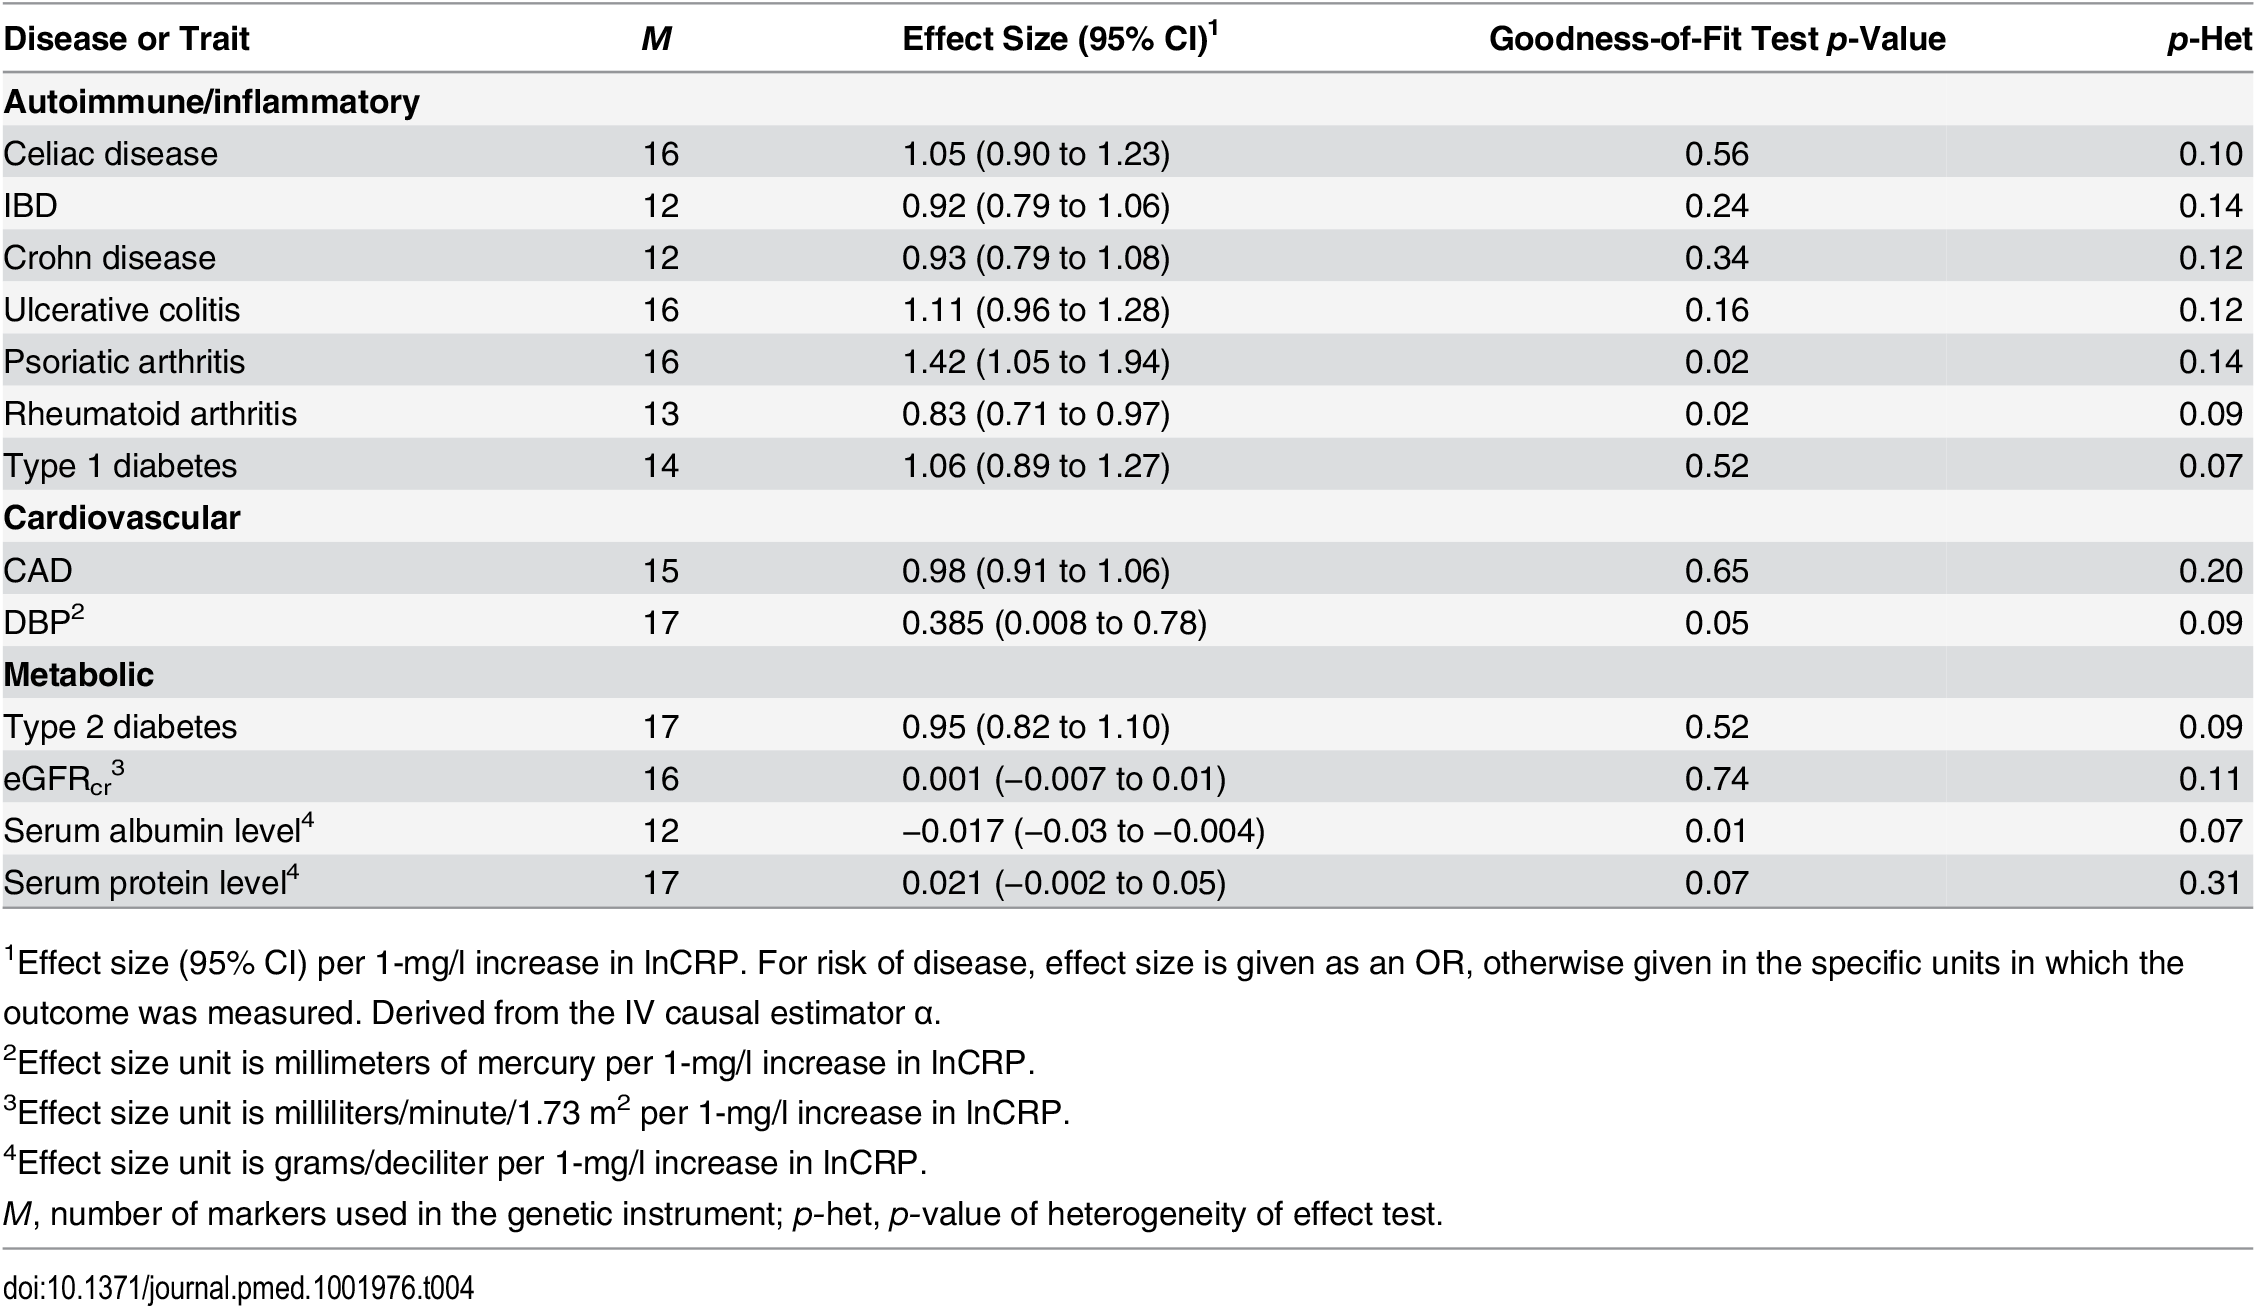 The effect of the CRP genetic risk score instrument of 18 SNPs associated with CRP (GRS<sub><i>GWAS</i></sub>) on somatic and neuropsychiatric outcomes after correcting for heterogeneity.